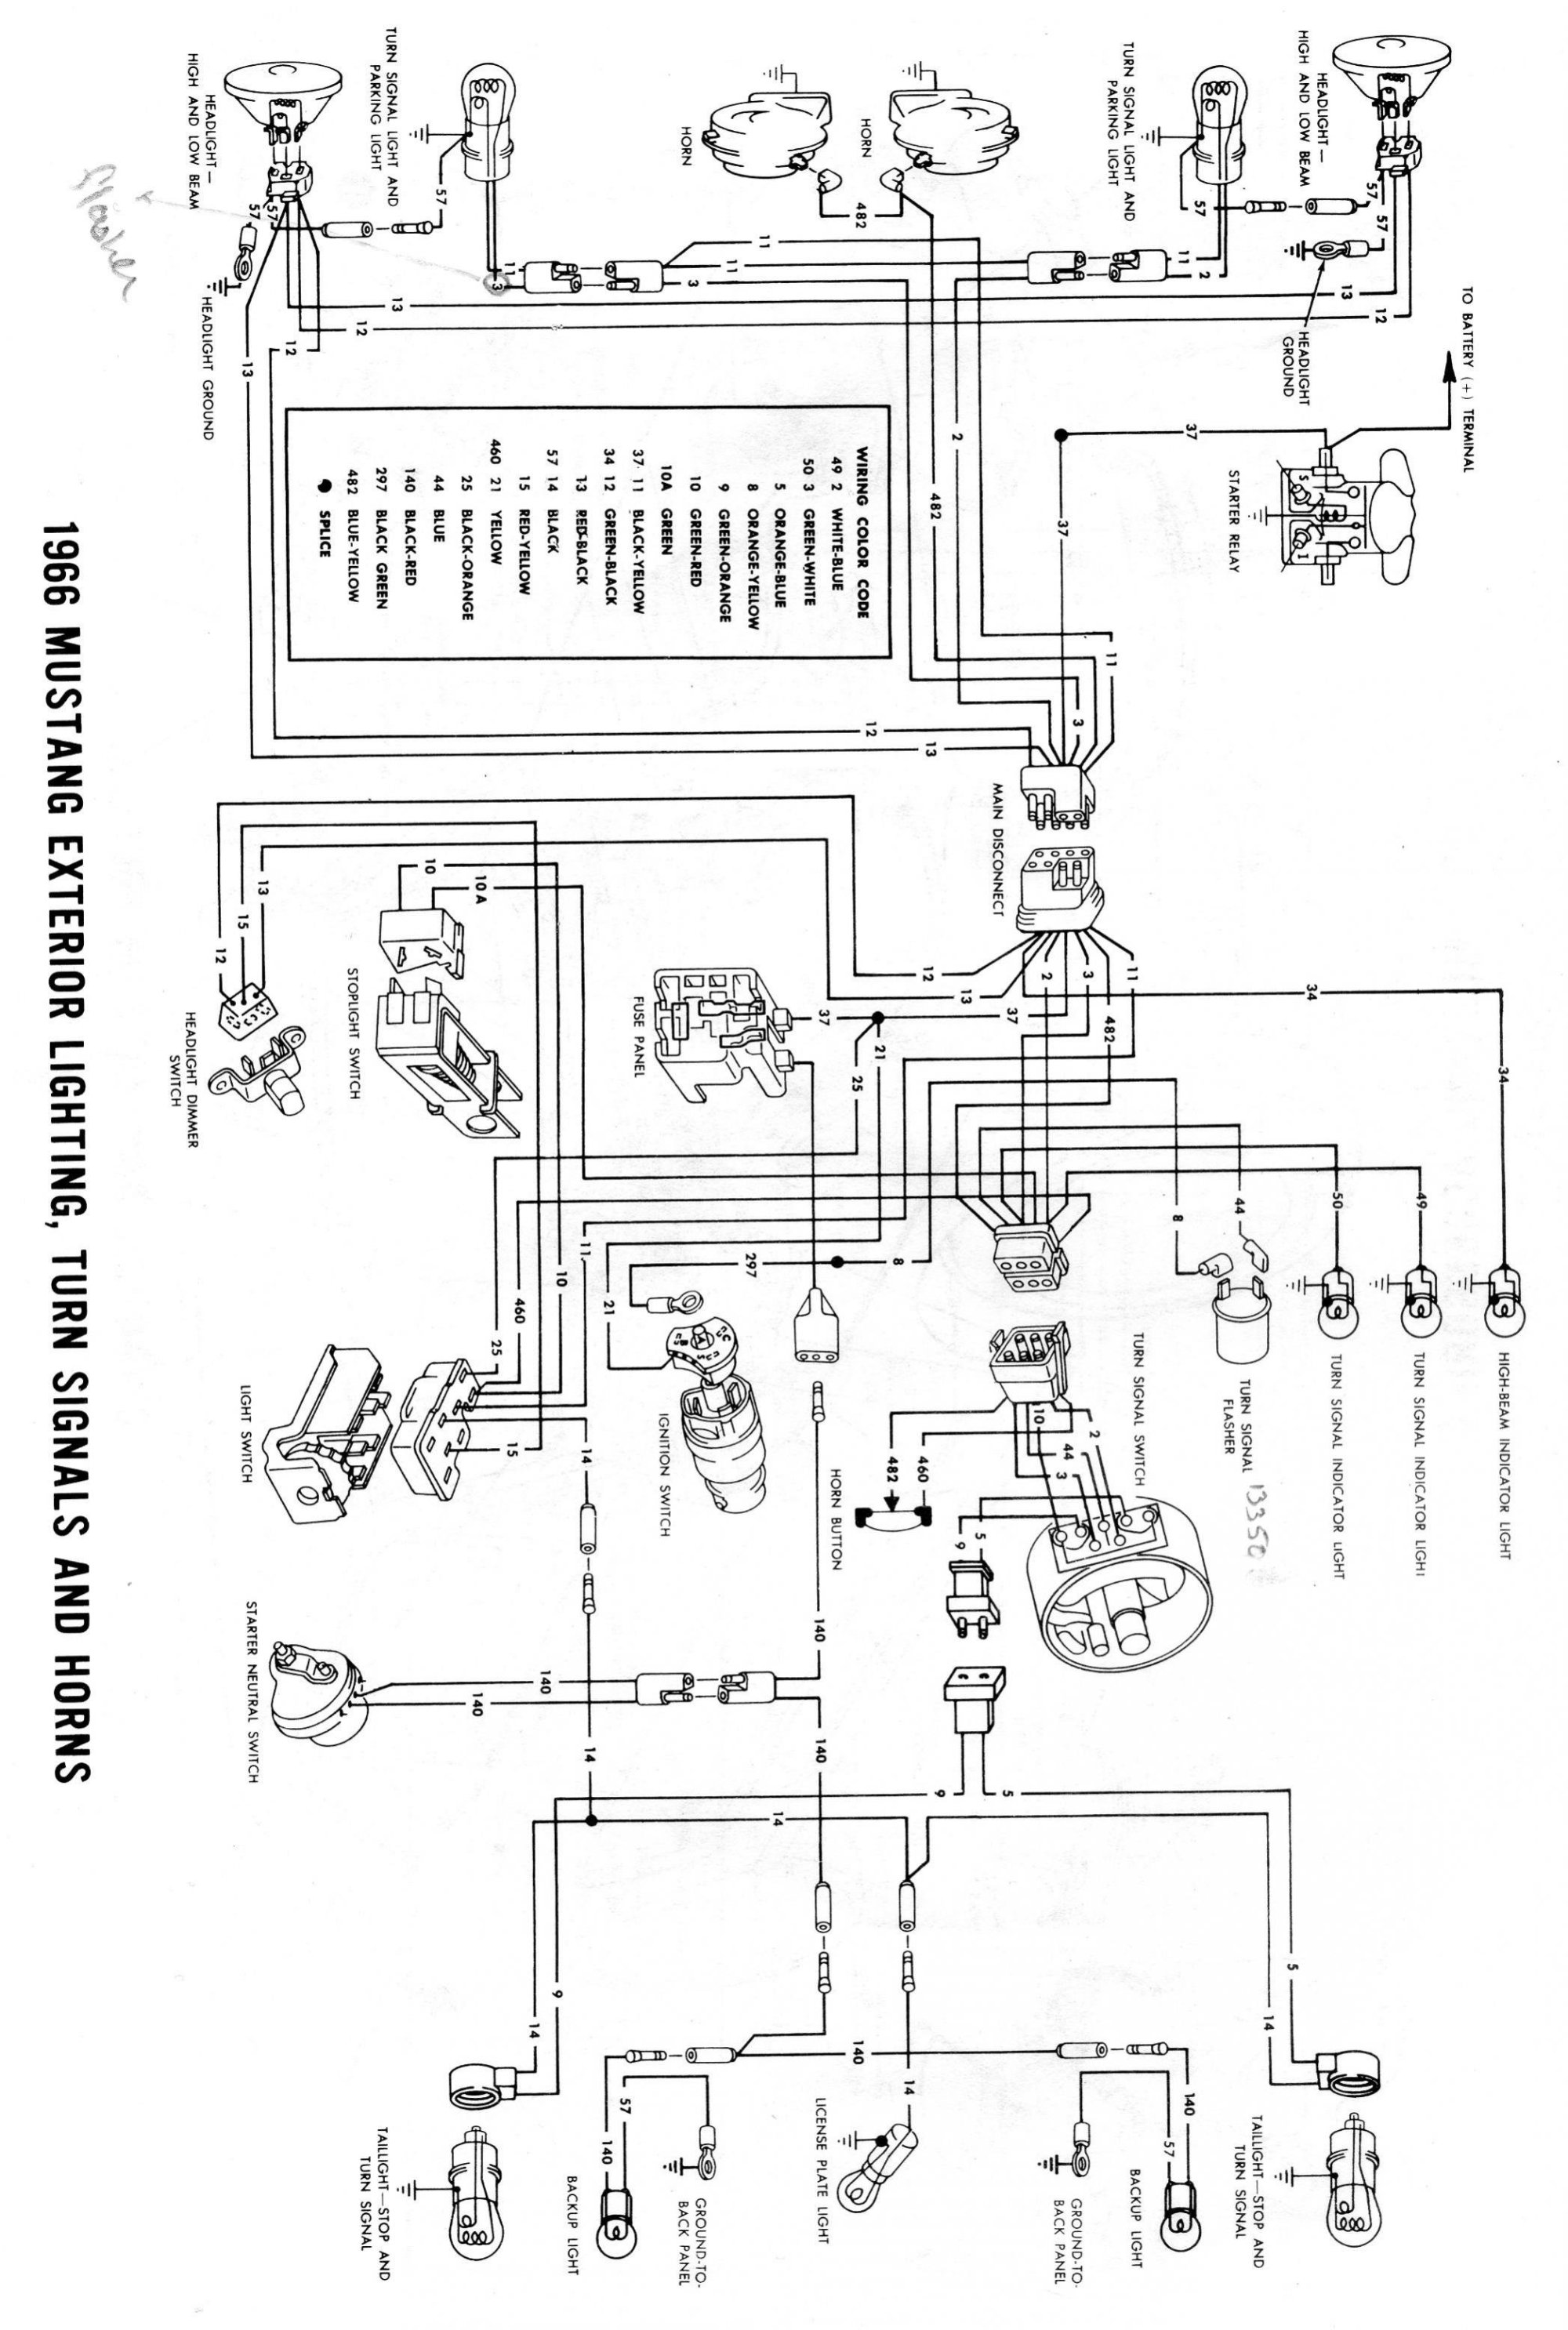 hight resolution of 1970 mustang turn signal wiring diagram